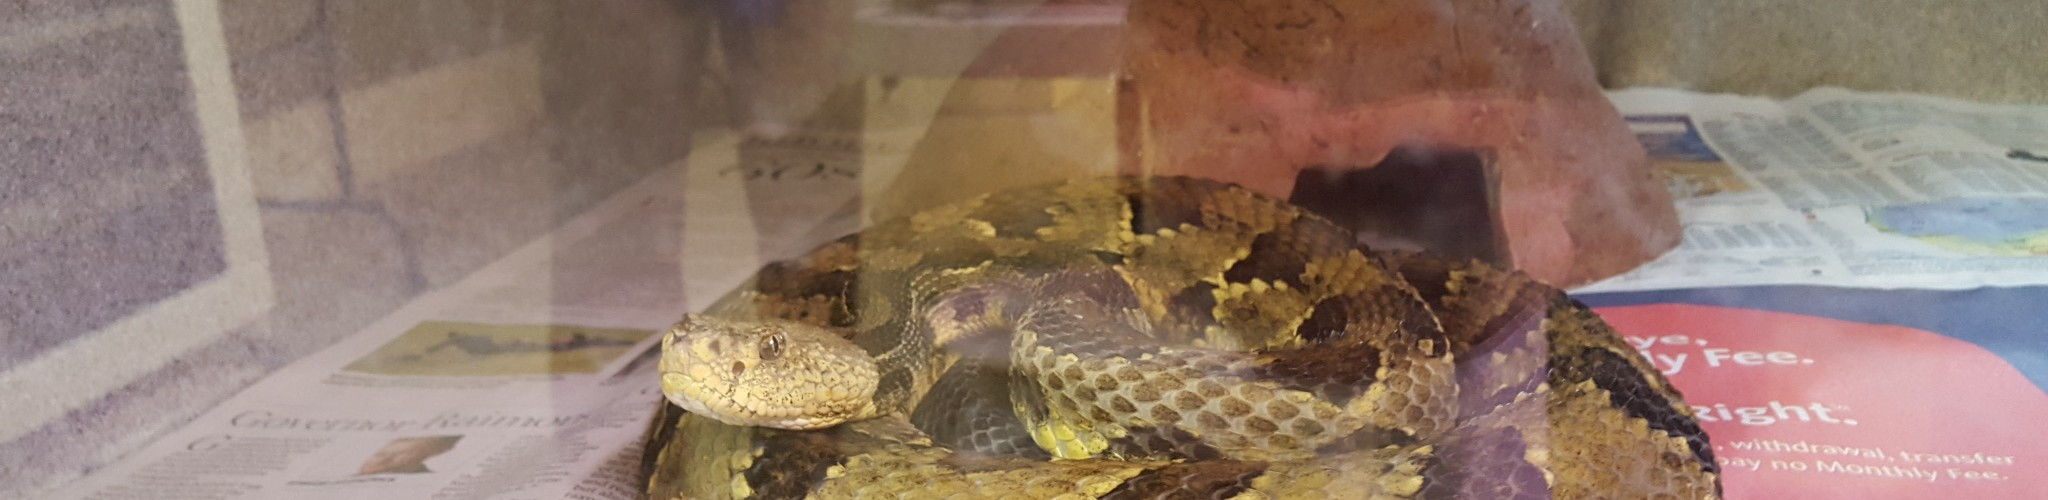 This timber rattlesnake is being raised at the Roger Willam's Park Zoo in Rhode Island. It's babies will help bolster the population in Massachusetts